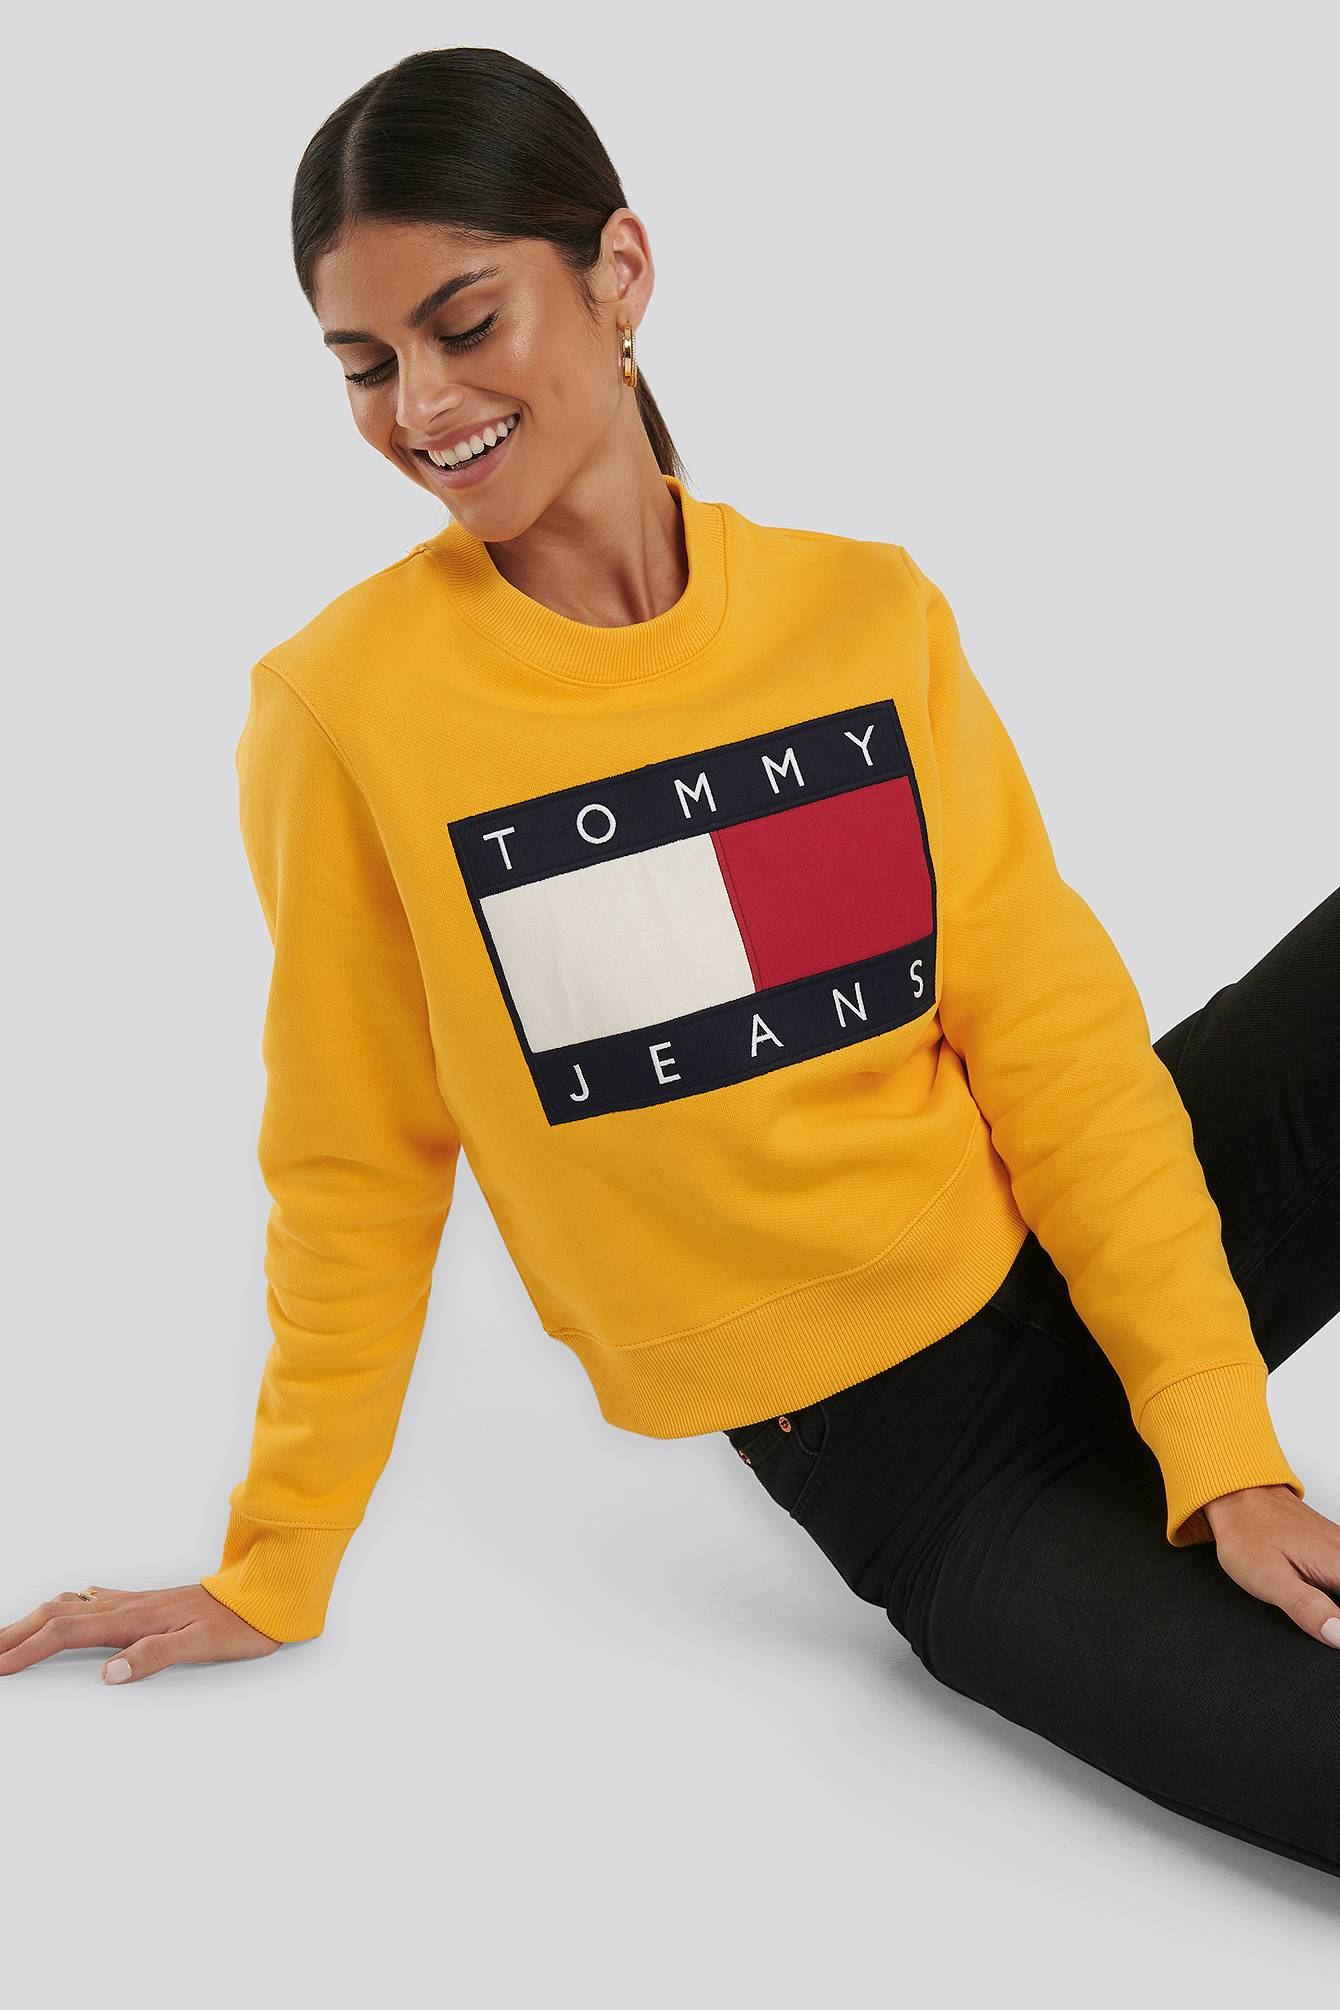 Tommy Jeans Tommy Flag Crew - Yellow  - Size: Small